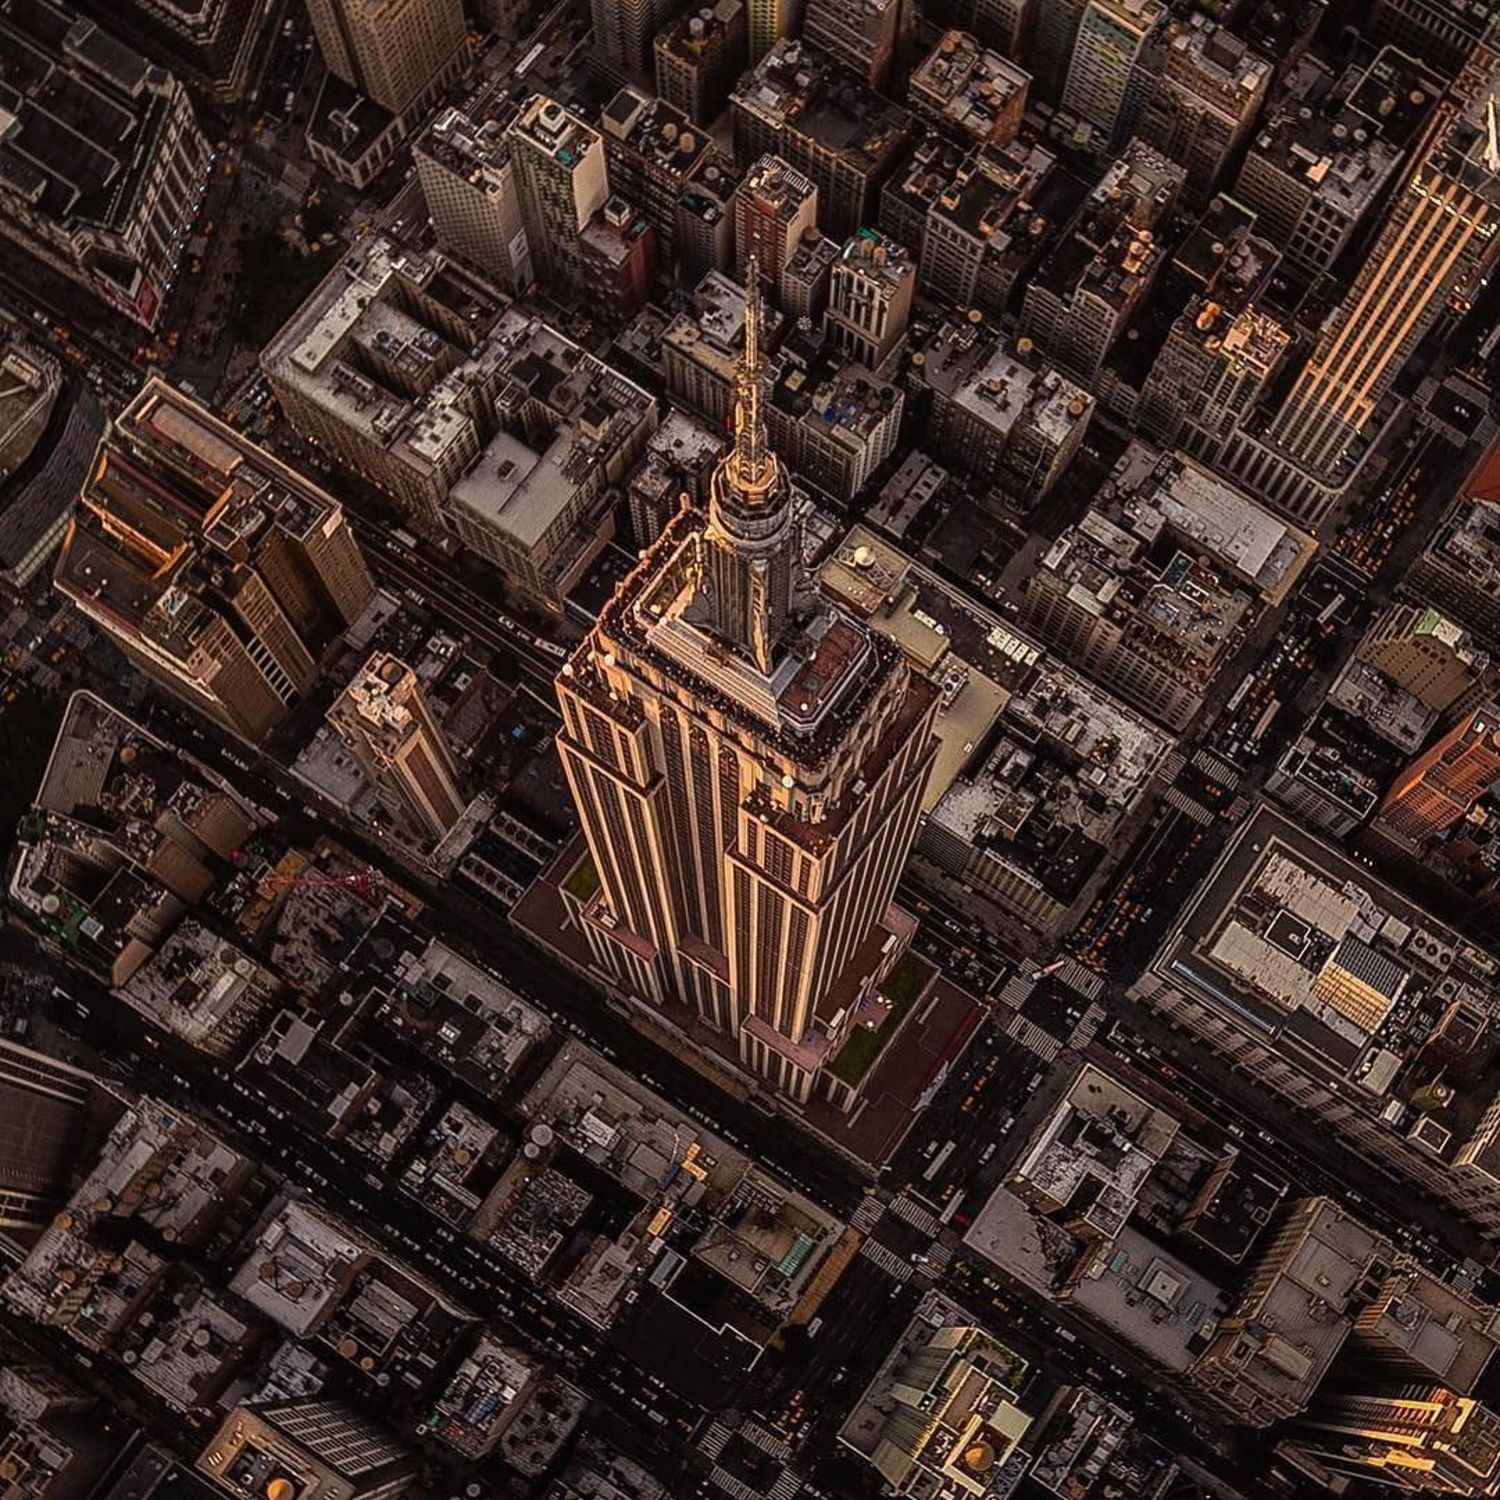 Empire State Building, New York City. Photo via @2ndfloorguy #viewingnyc #newyorkcity #newyork